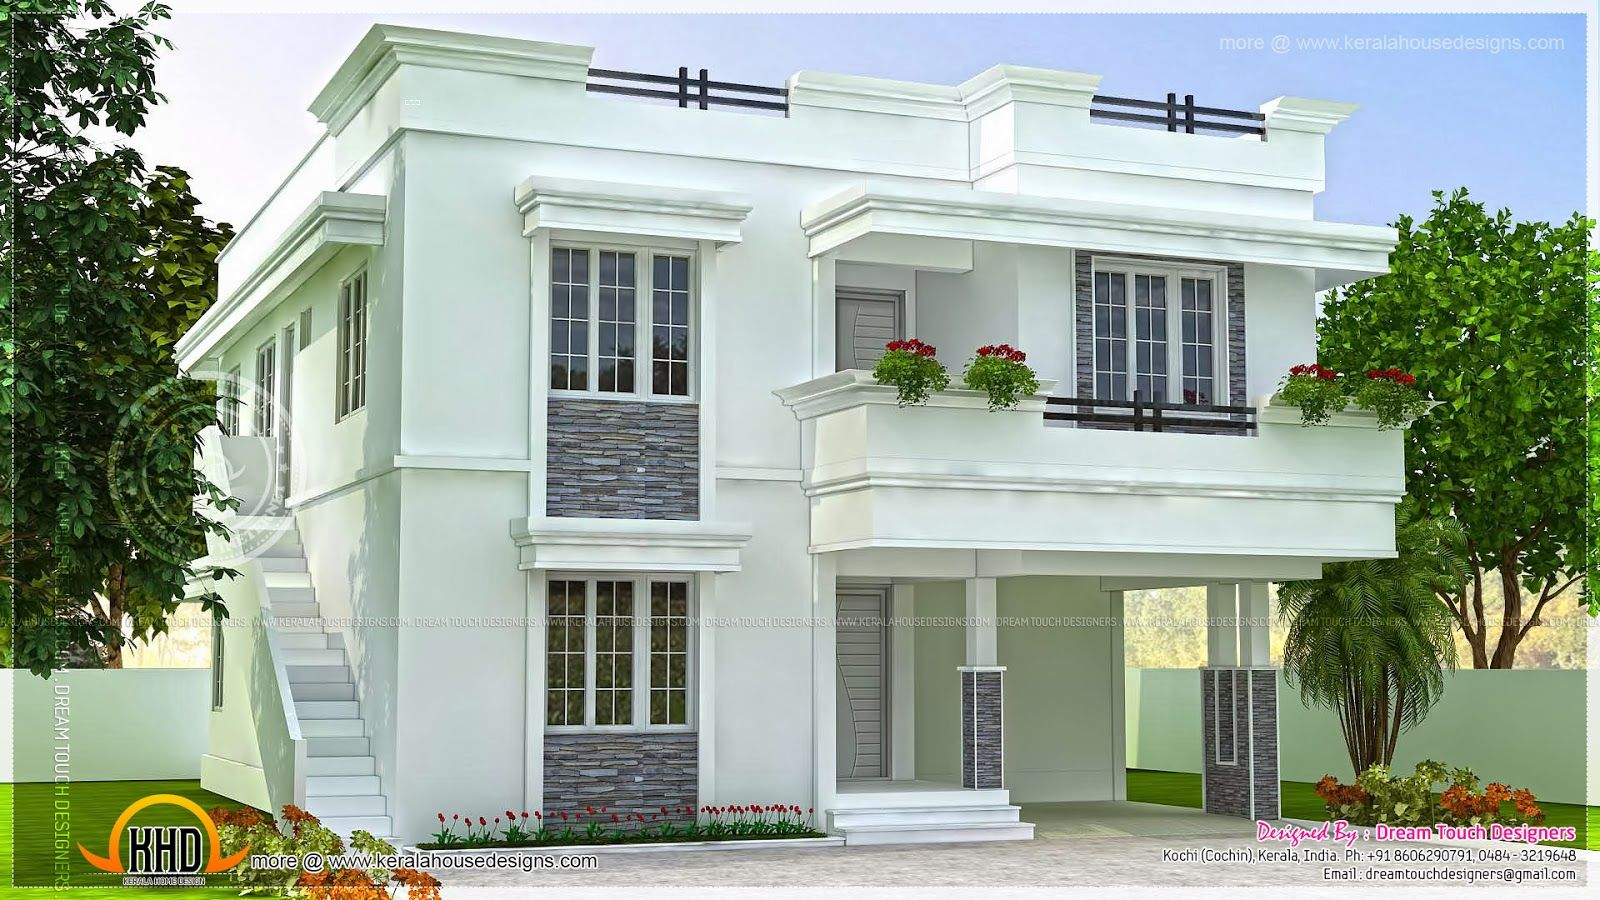 Modern Beautiful Home Modern Beautiful Home Design Indian House Plans Ideas For The House